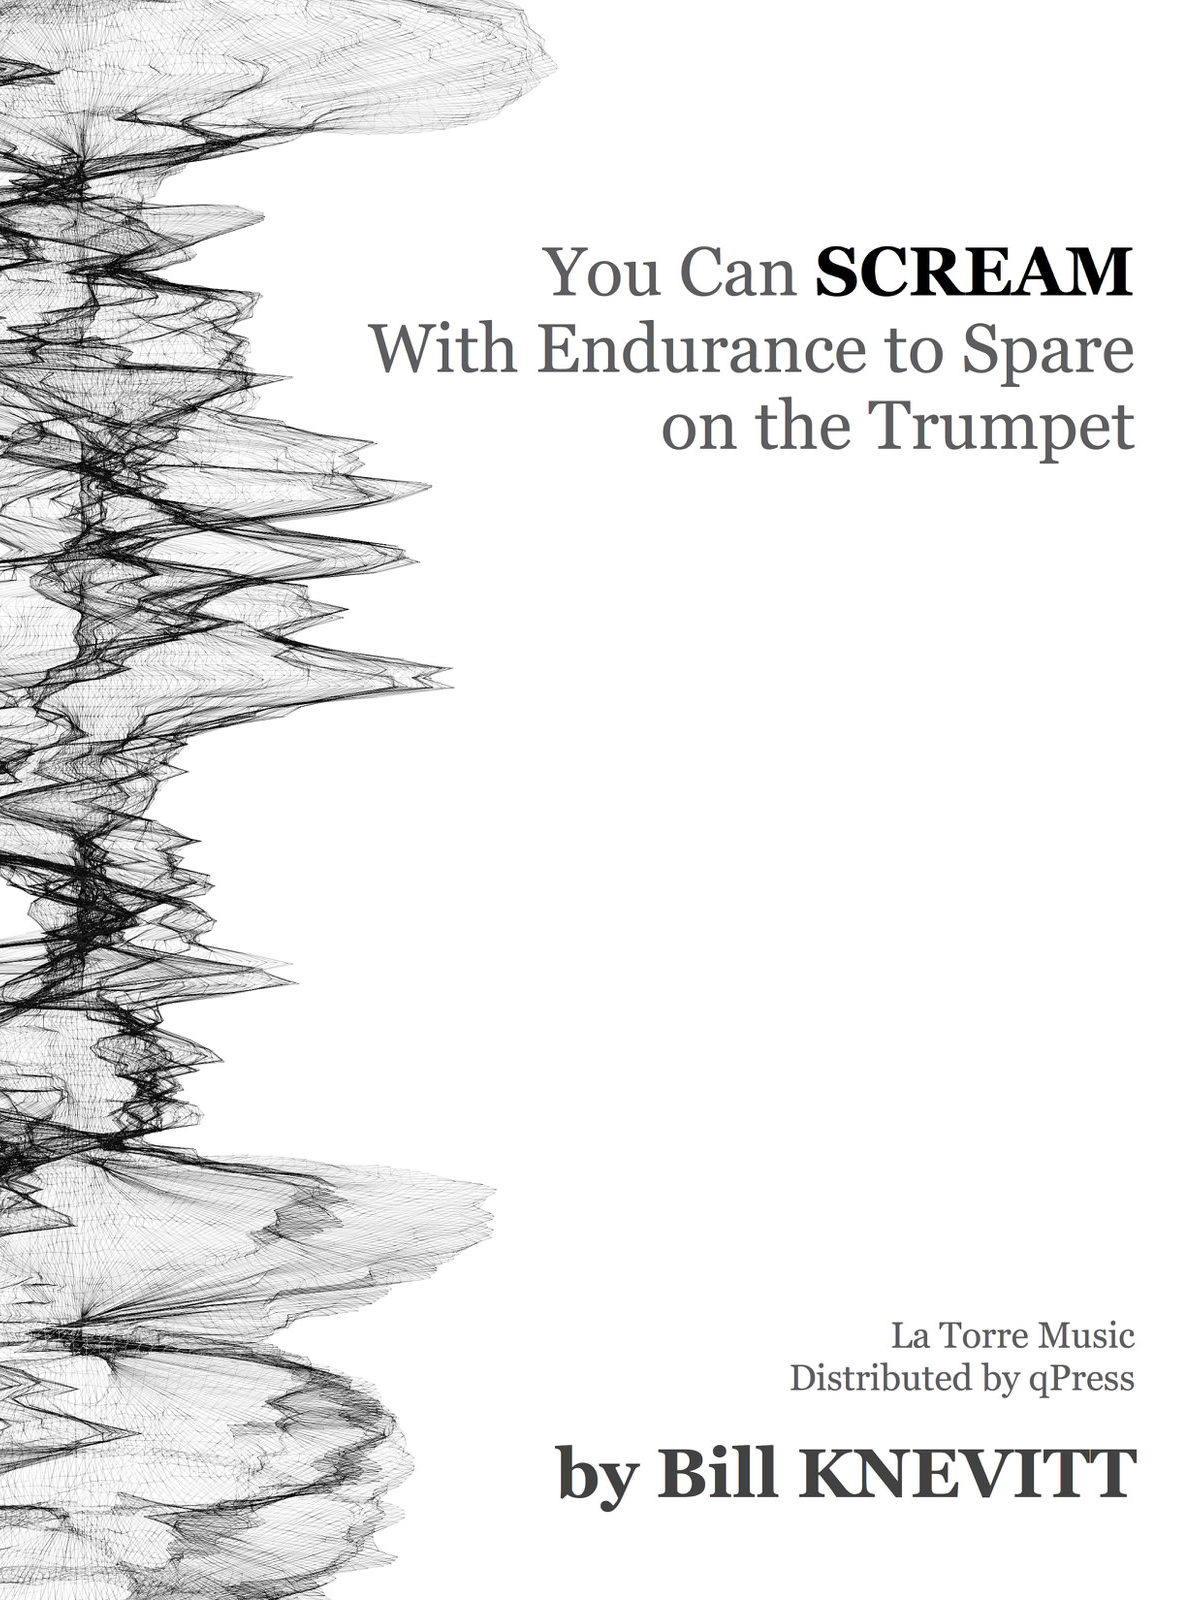 You Can Scream With Endurance To Spare On Trumpet by